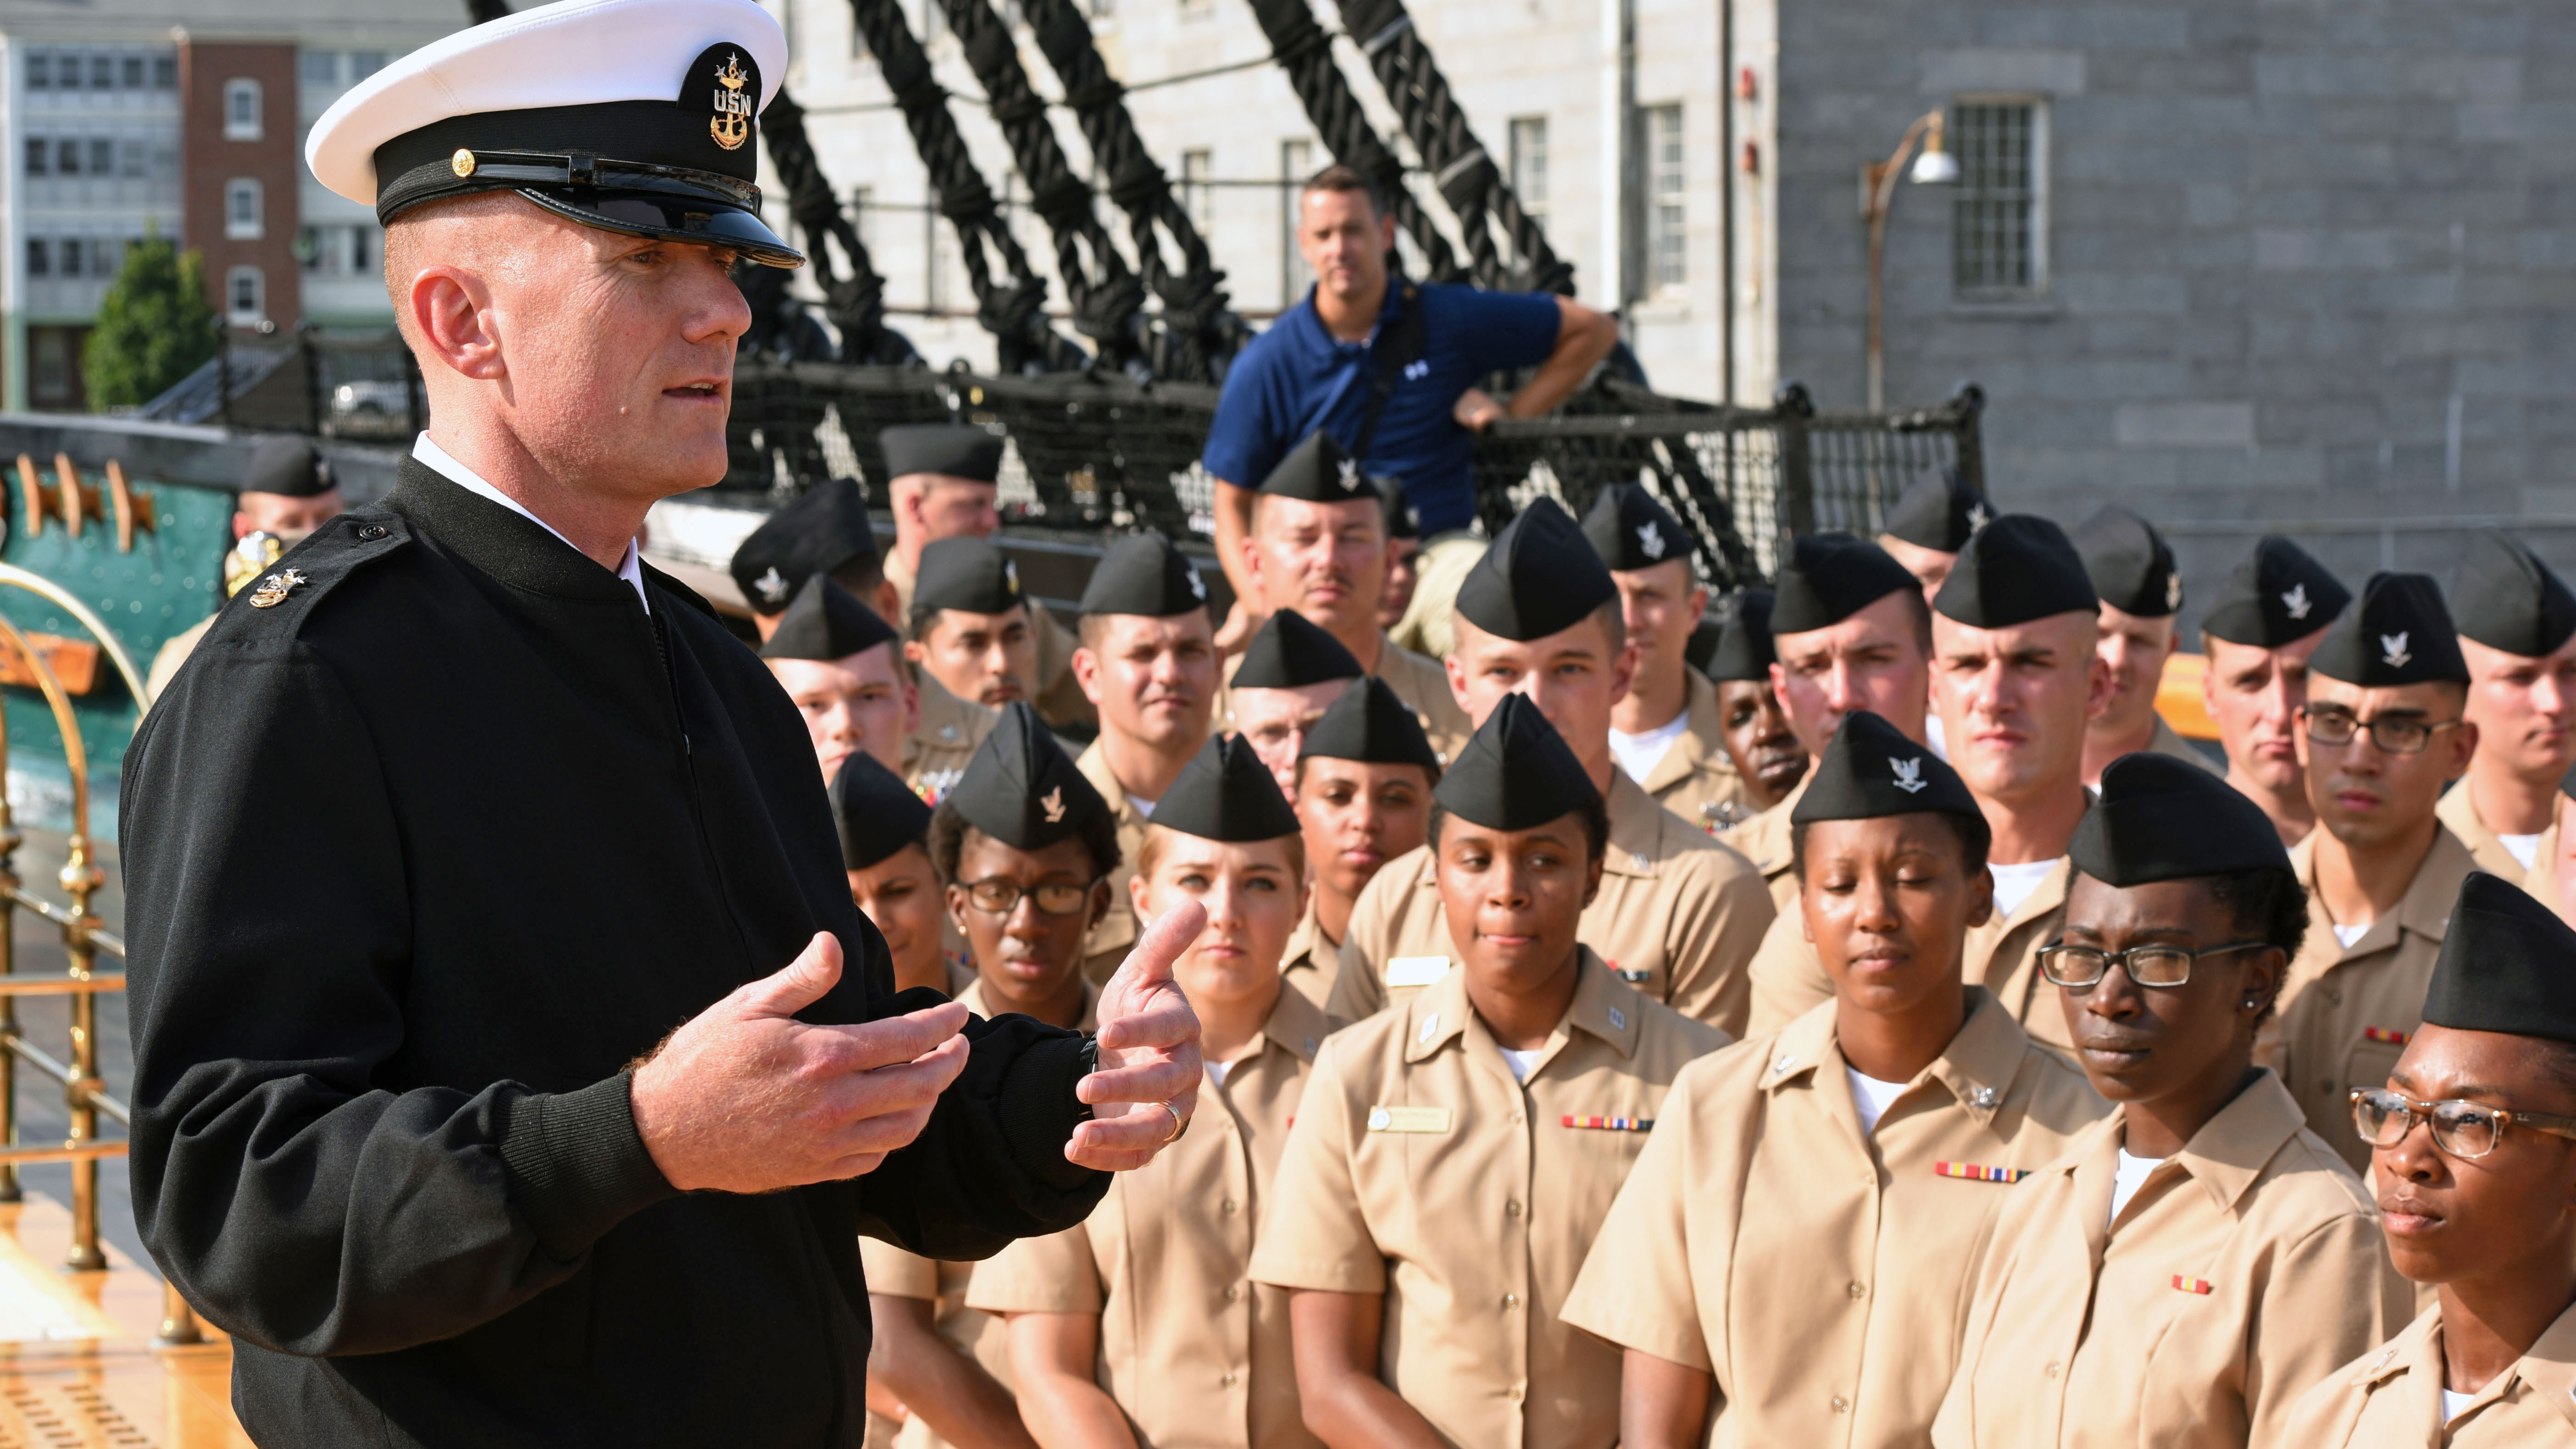 Misconduct nearly ended his career. How tough lessons shaped the new MCPON.